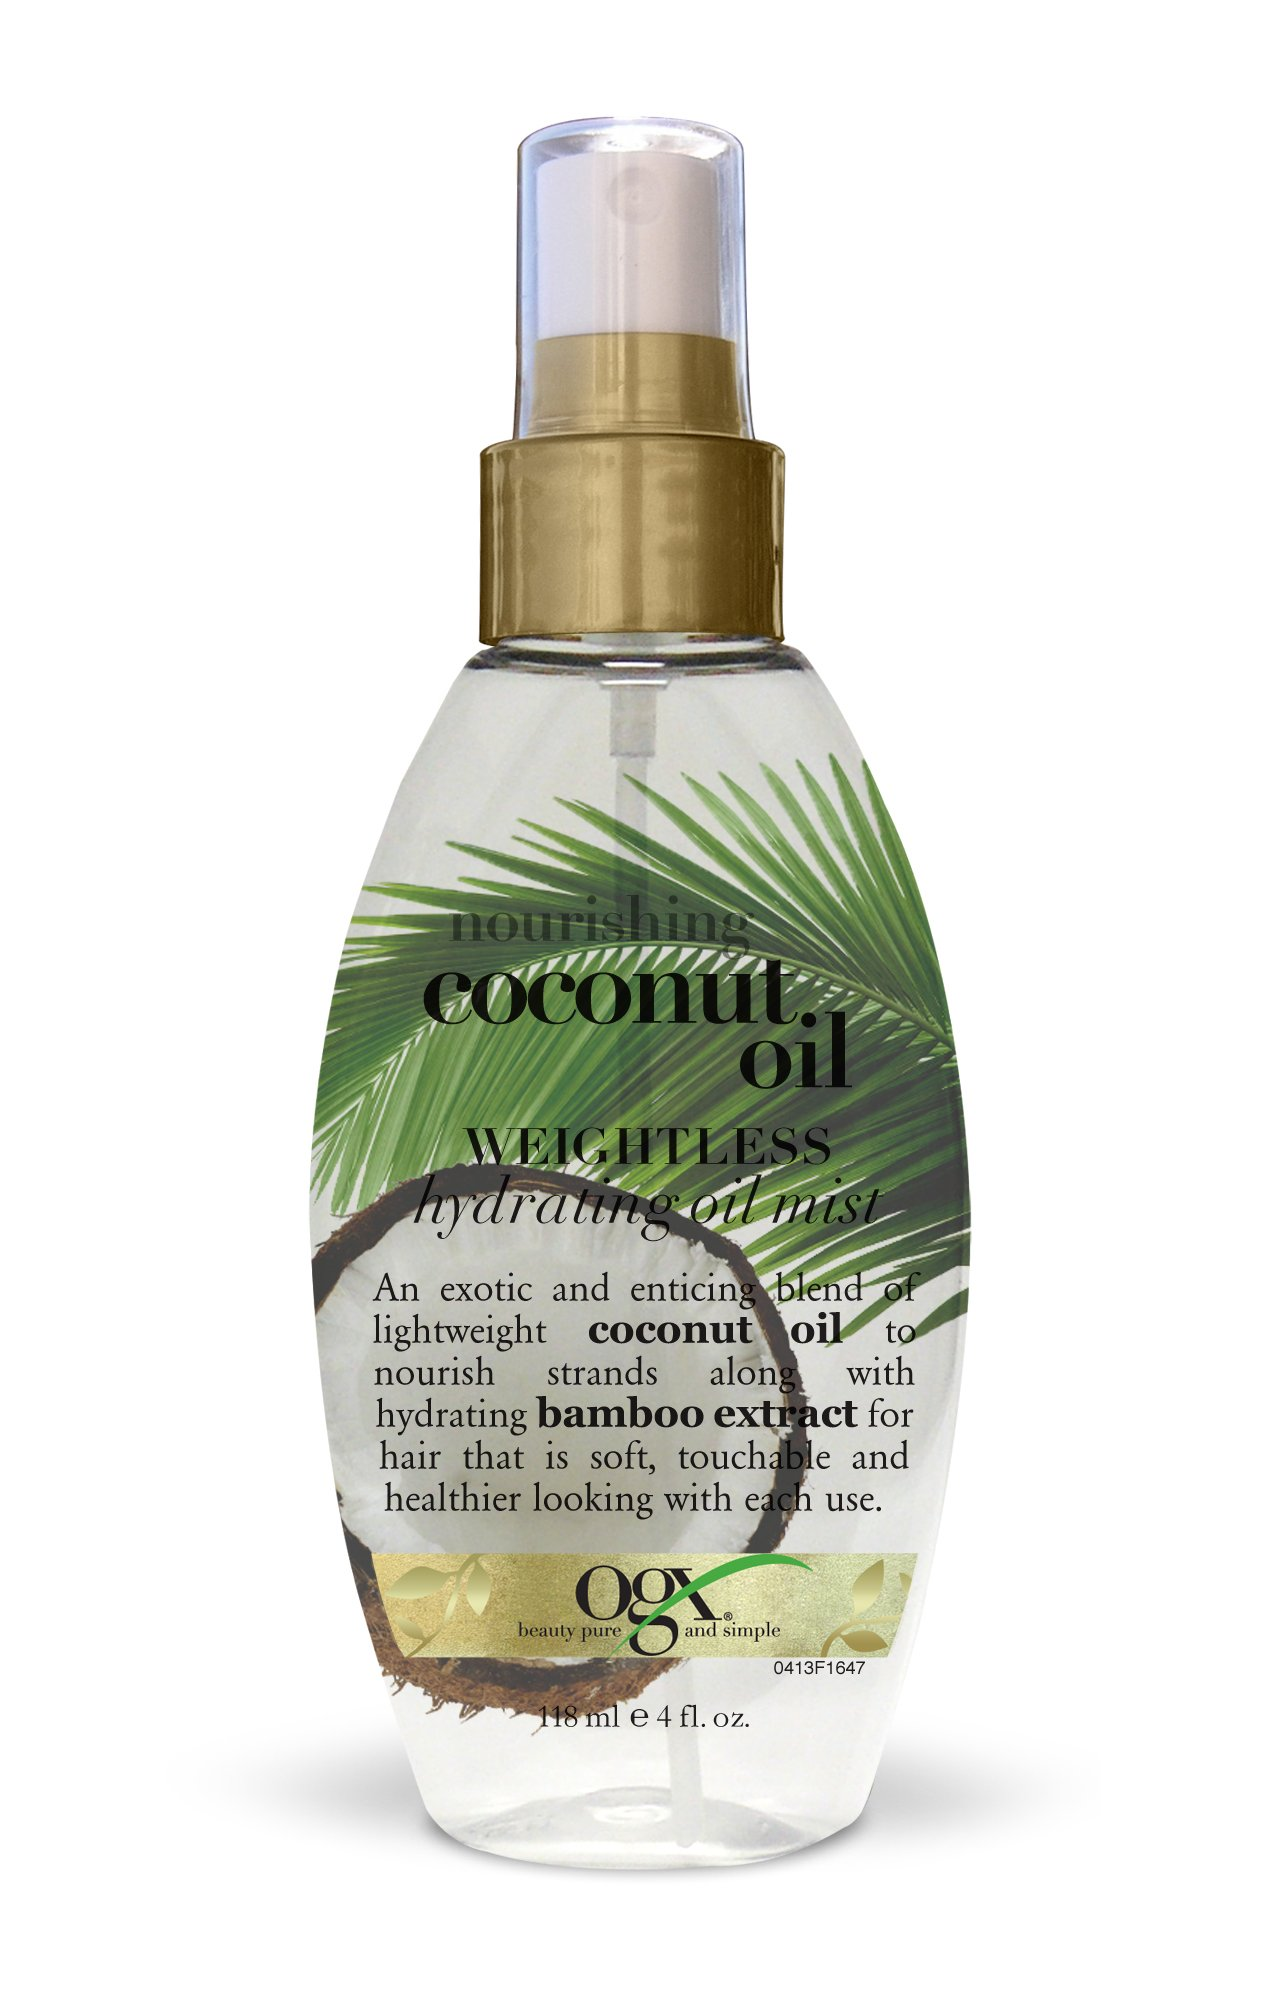 OGX Nourishing + Coconut Oil Weightless Hydrating Oil Hair Mist, Lightweight Leave-In Hair Treatment with Coconut Oil & Bamboo Extract, Paraben- & Sulfate Surfactant-Free, 4 fl oz